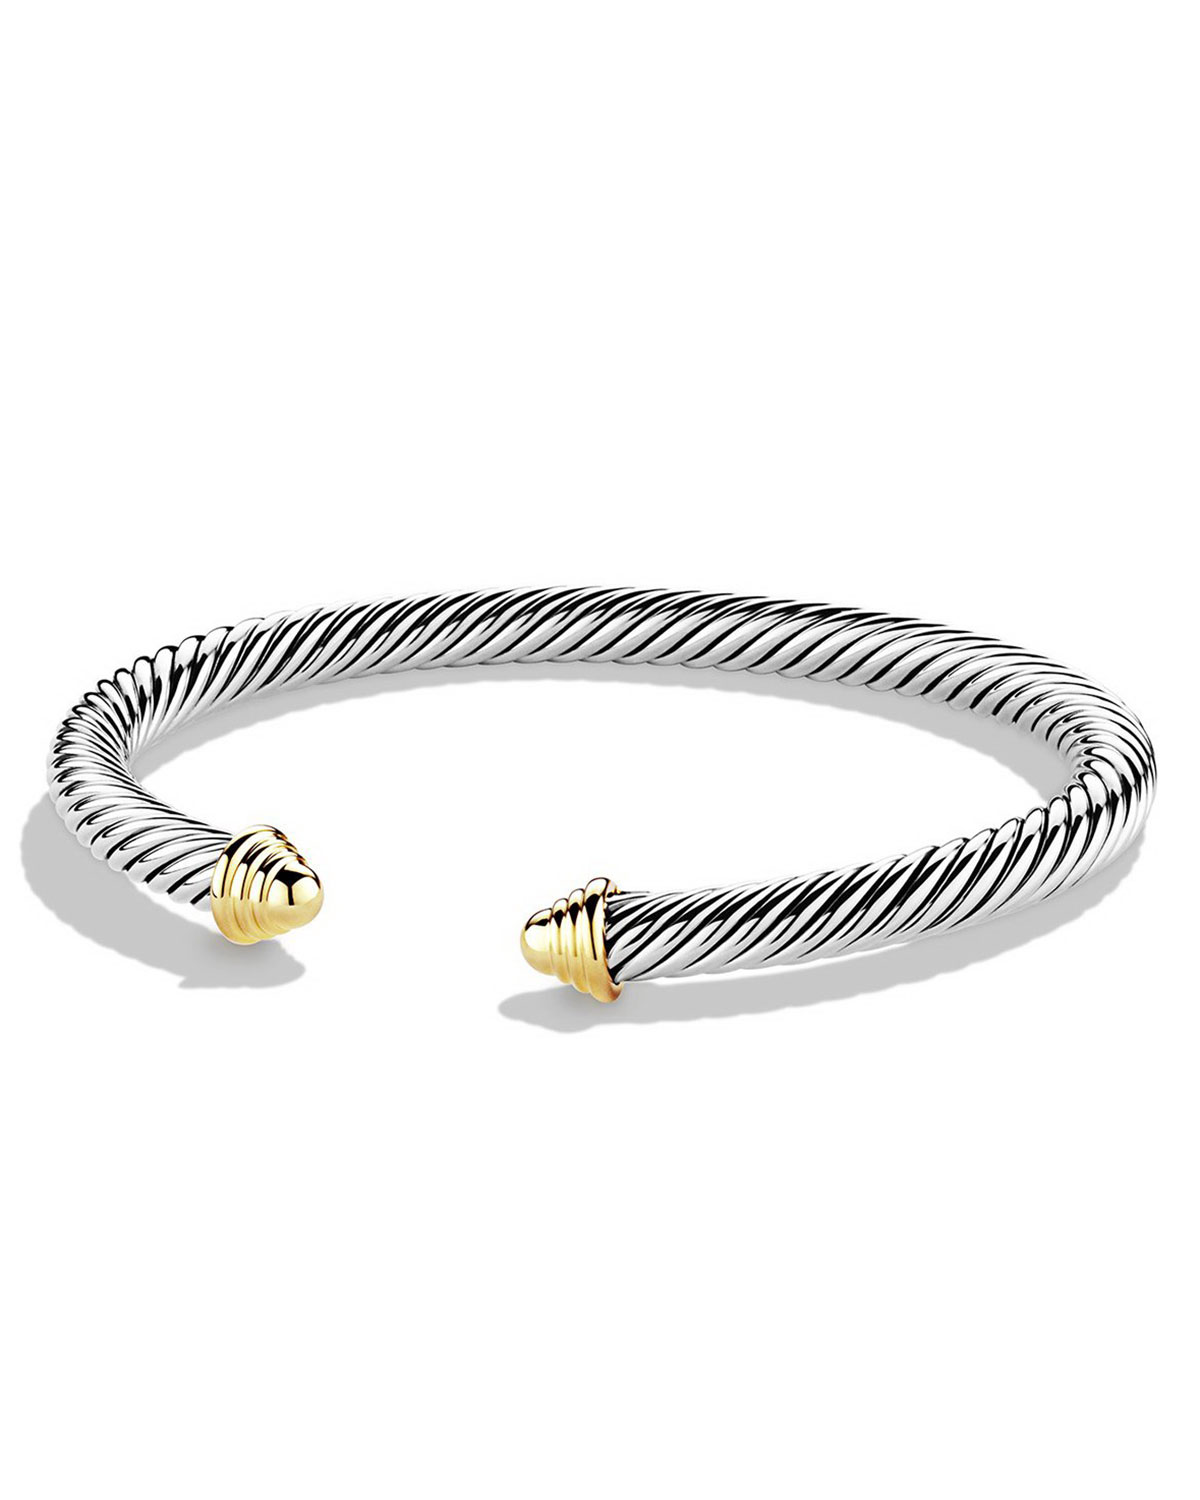 5mm Thoroughbred Cable Bracelet